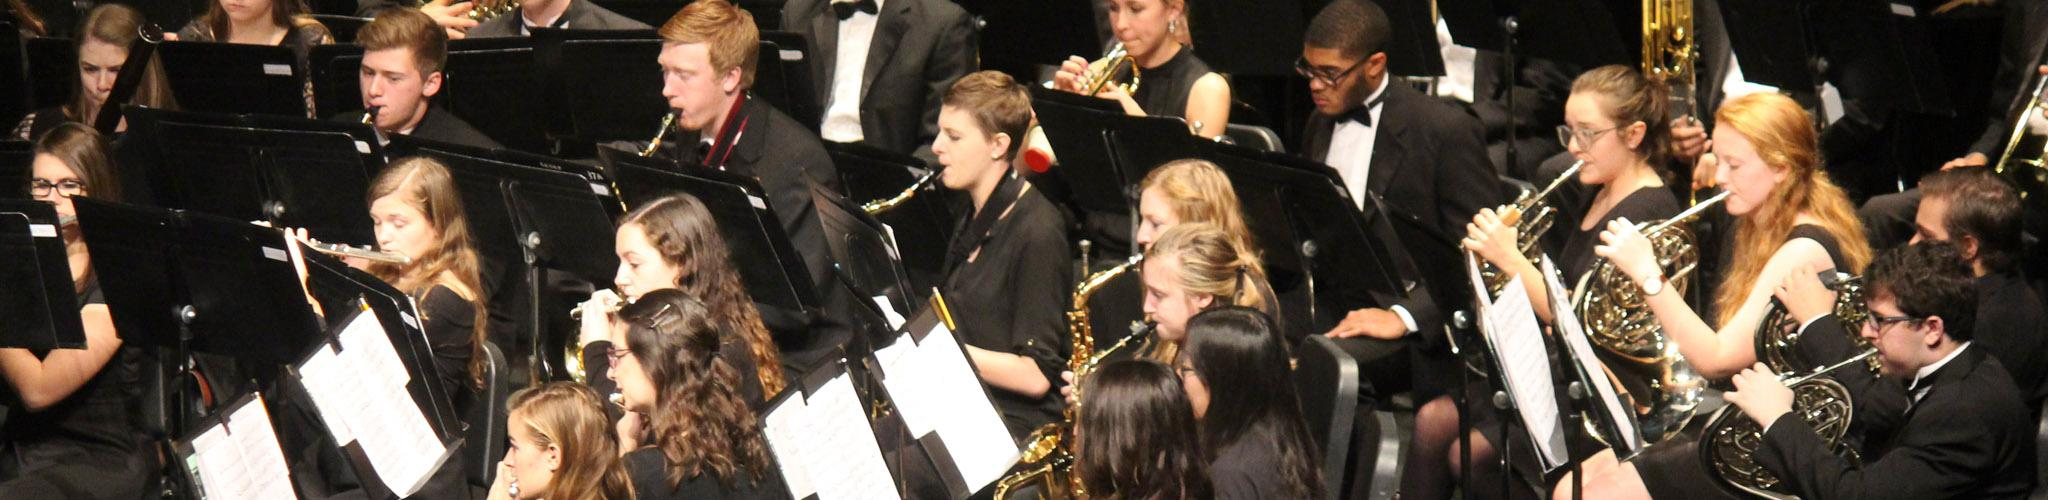 Marquette University Wind Ensemble performing